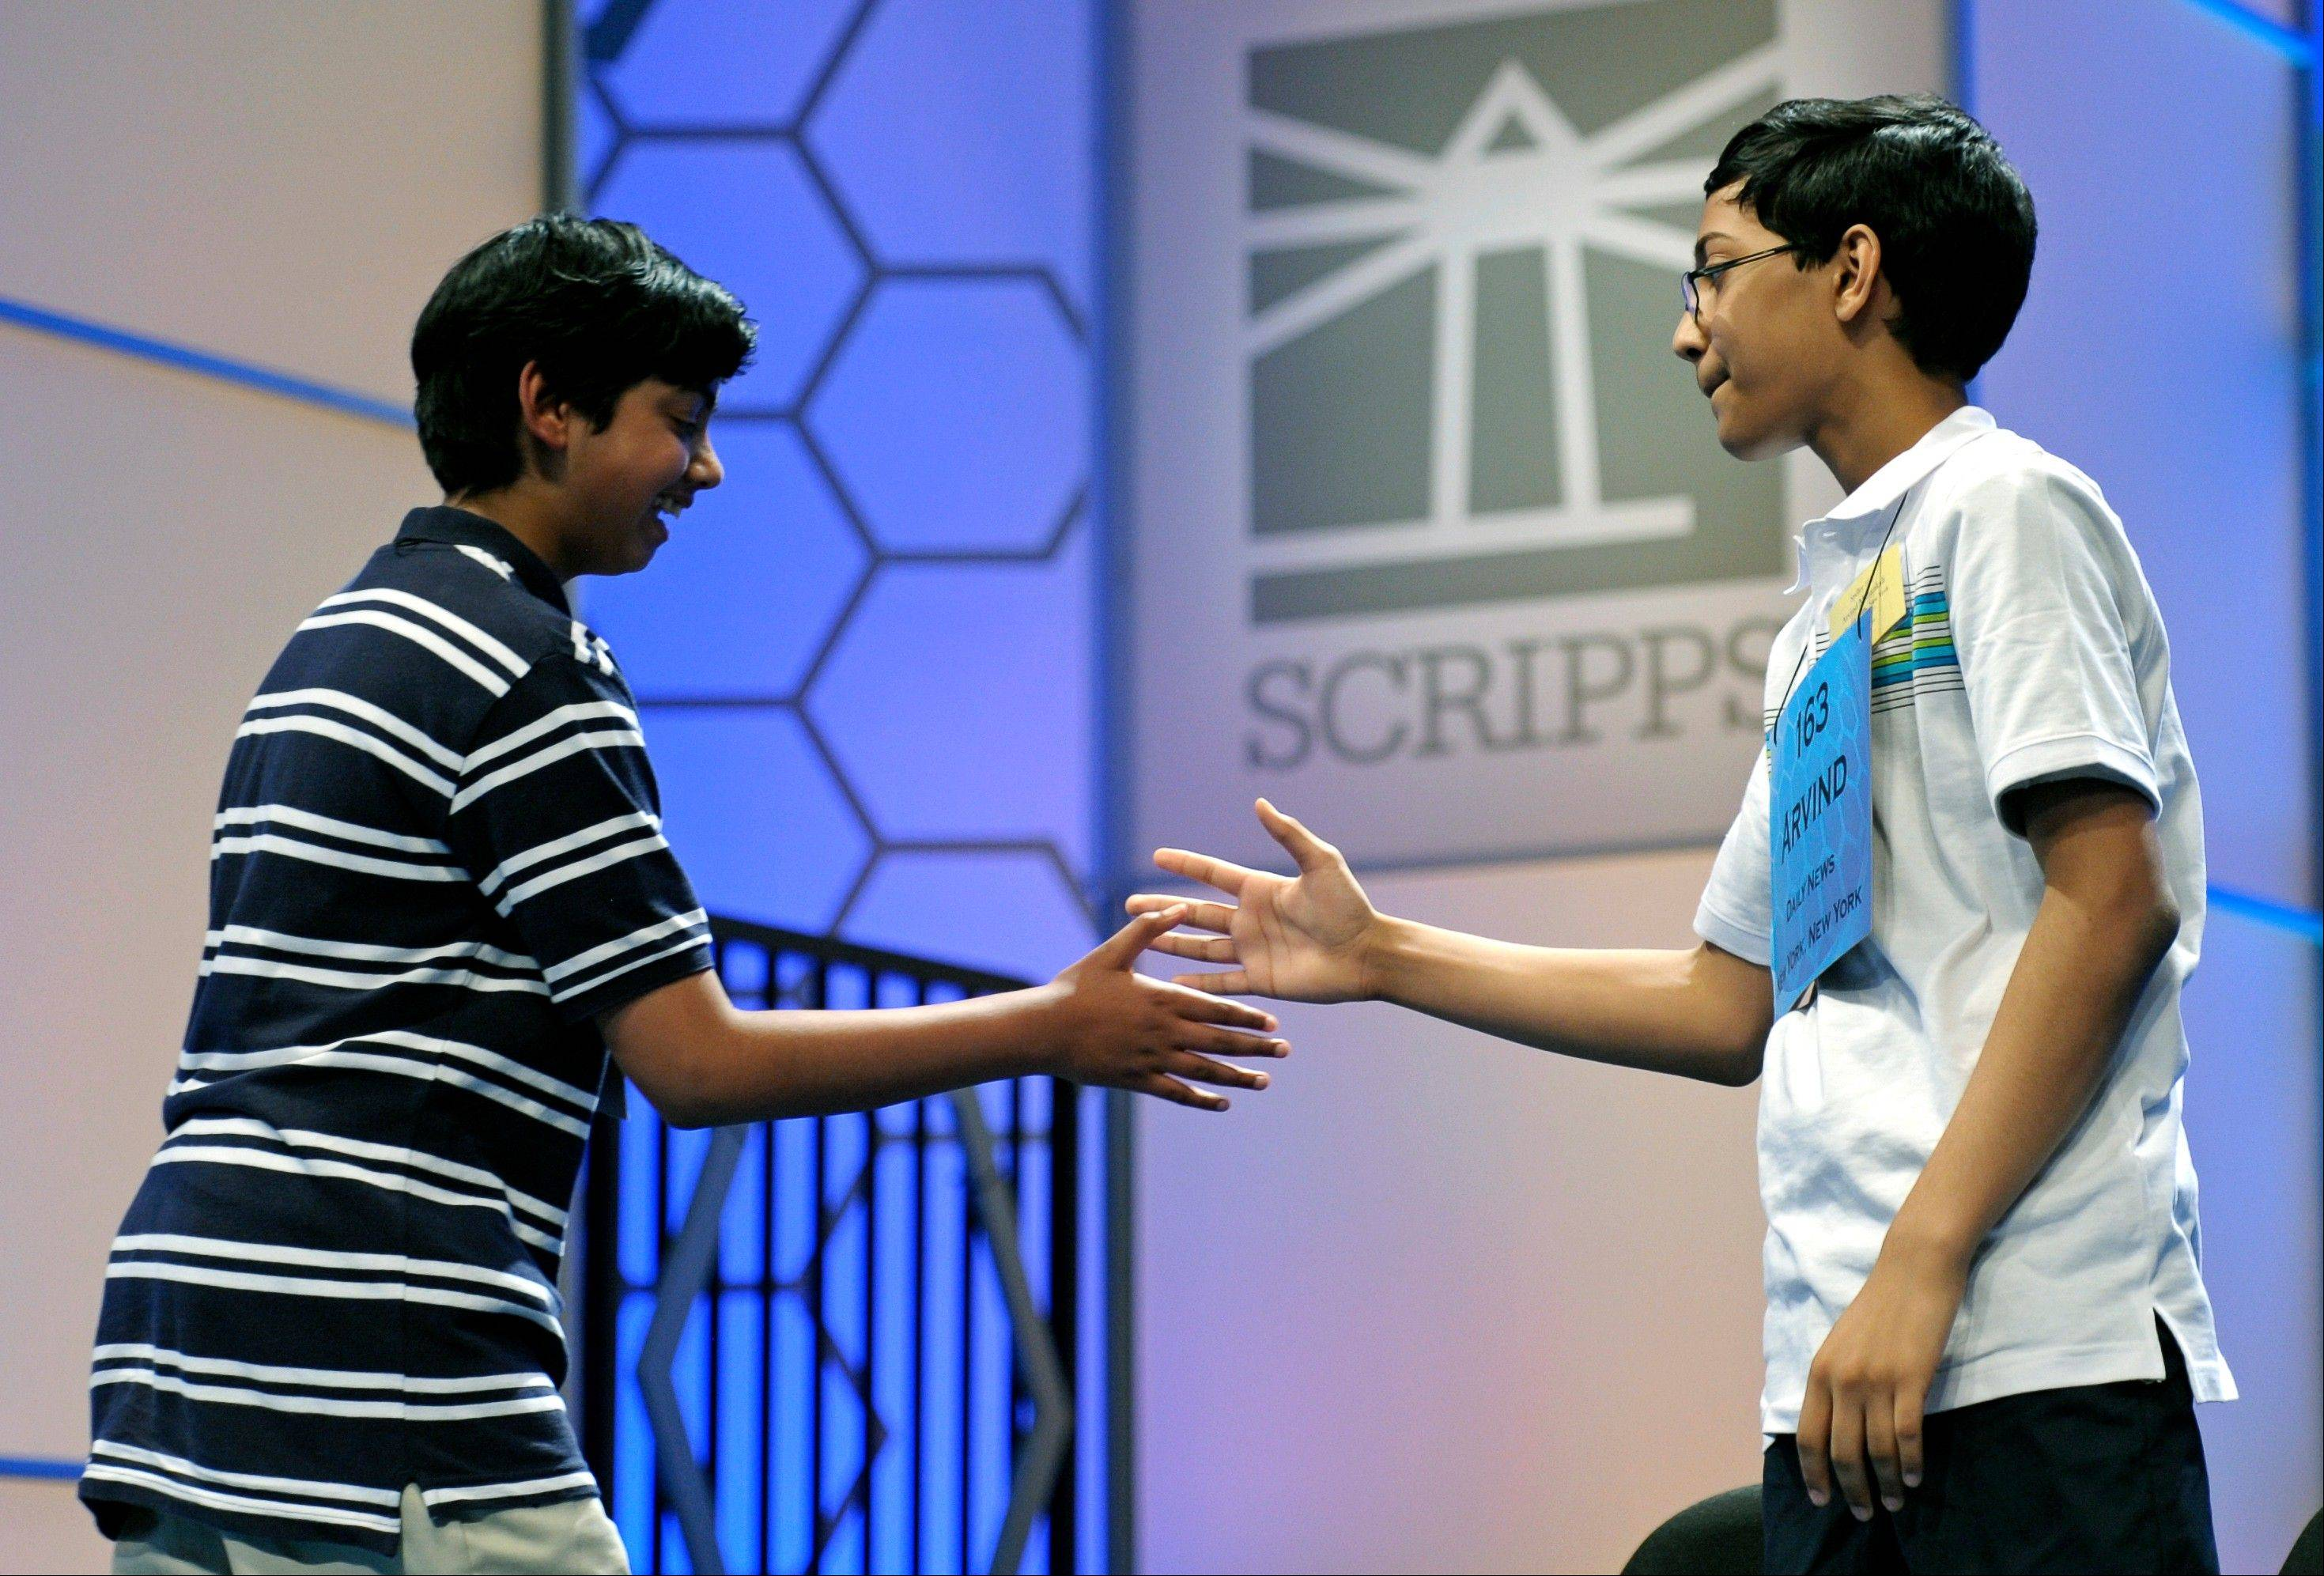 Scripps National Spelling Bee champion Arvind Mahankali, 13, of Bayside Hills, N.Y. extends his hand to second place finisher Pranav Sivakumar, 13, Tower Lakes, Ill., after Sivakumar incorrectly spelled his final word during the finals in Oxon Hill, Md.